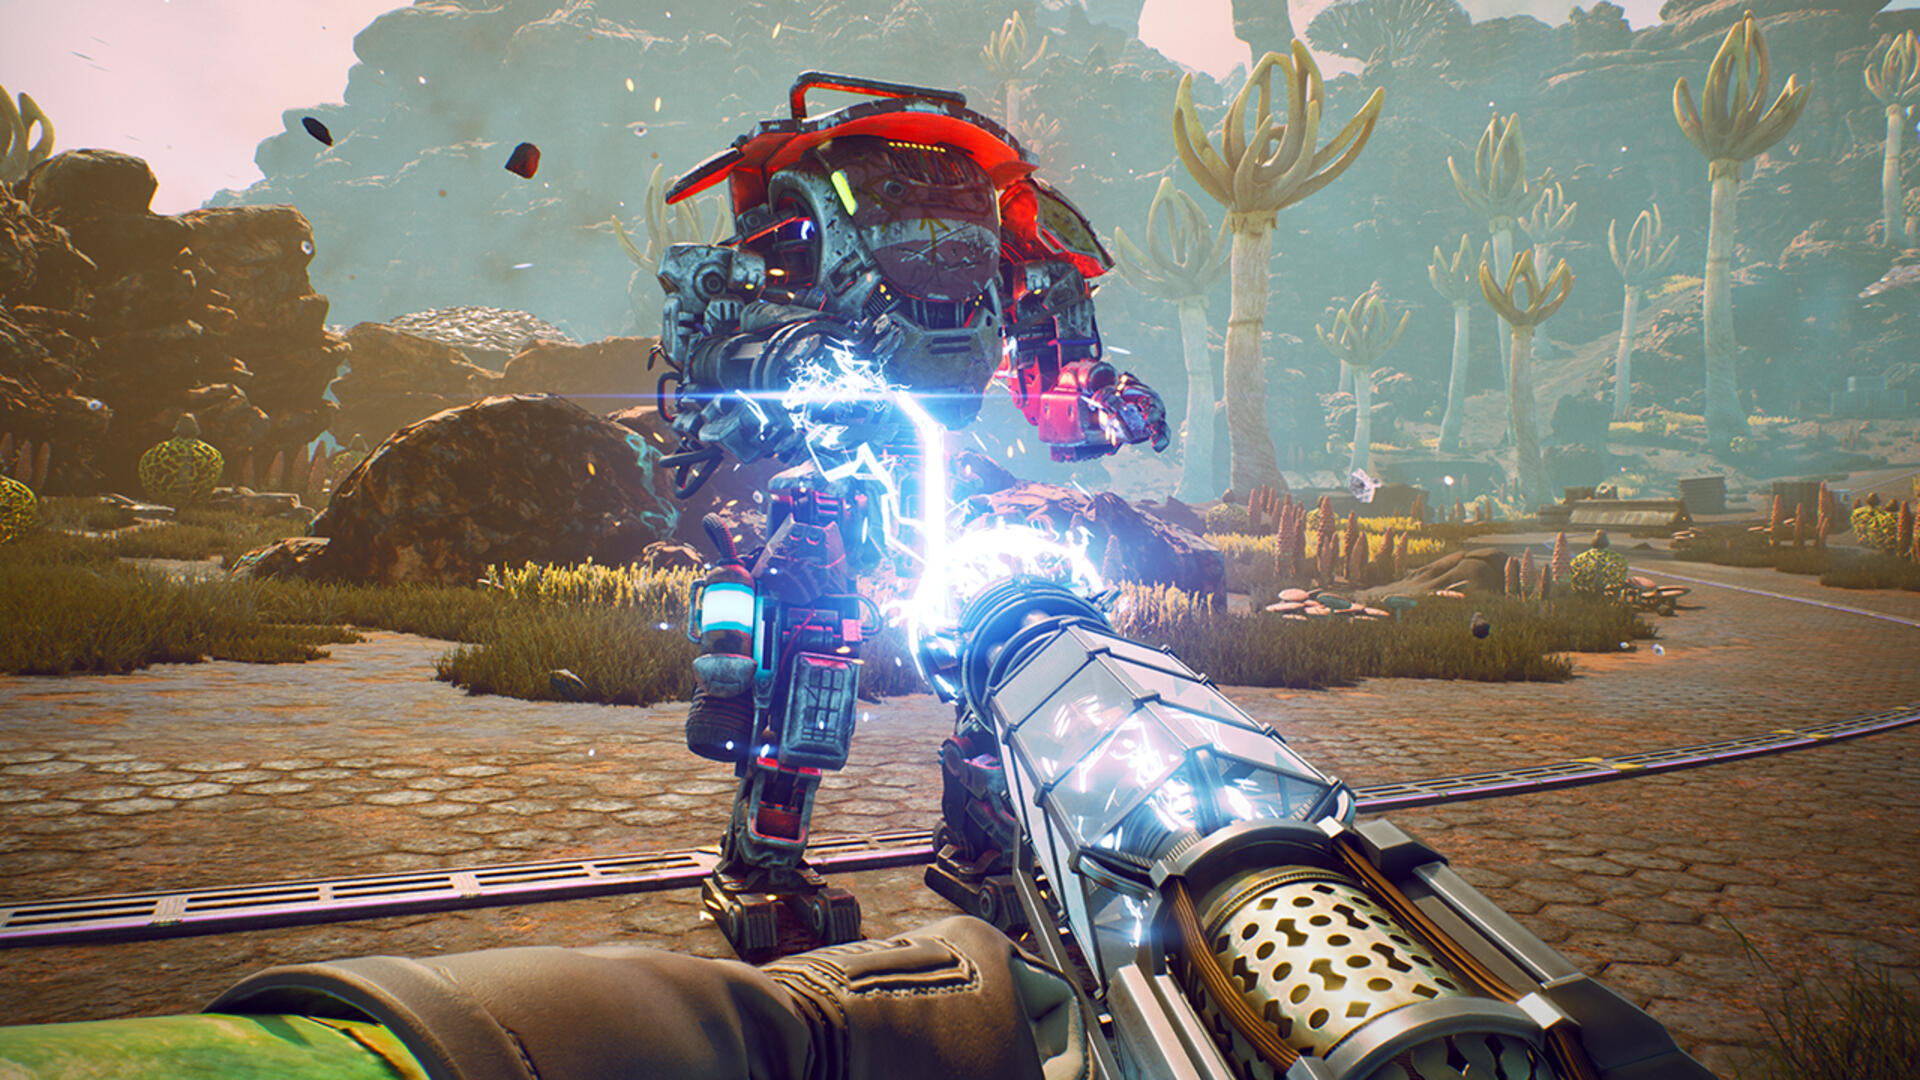 The Outer Worlds Zoe - How to Find and Bring Zoe Back